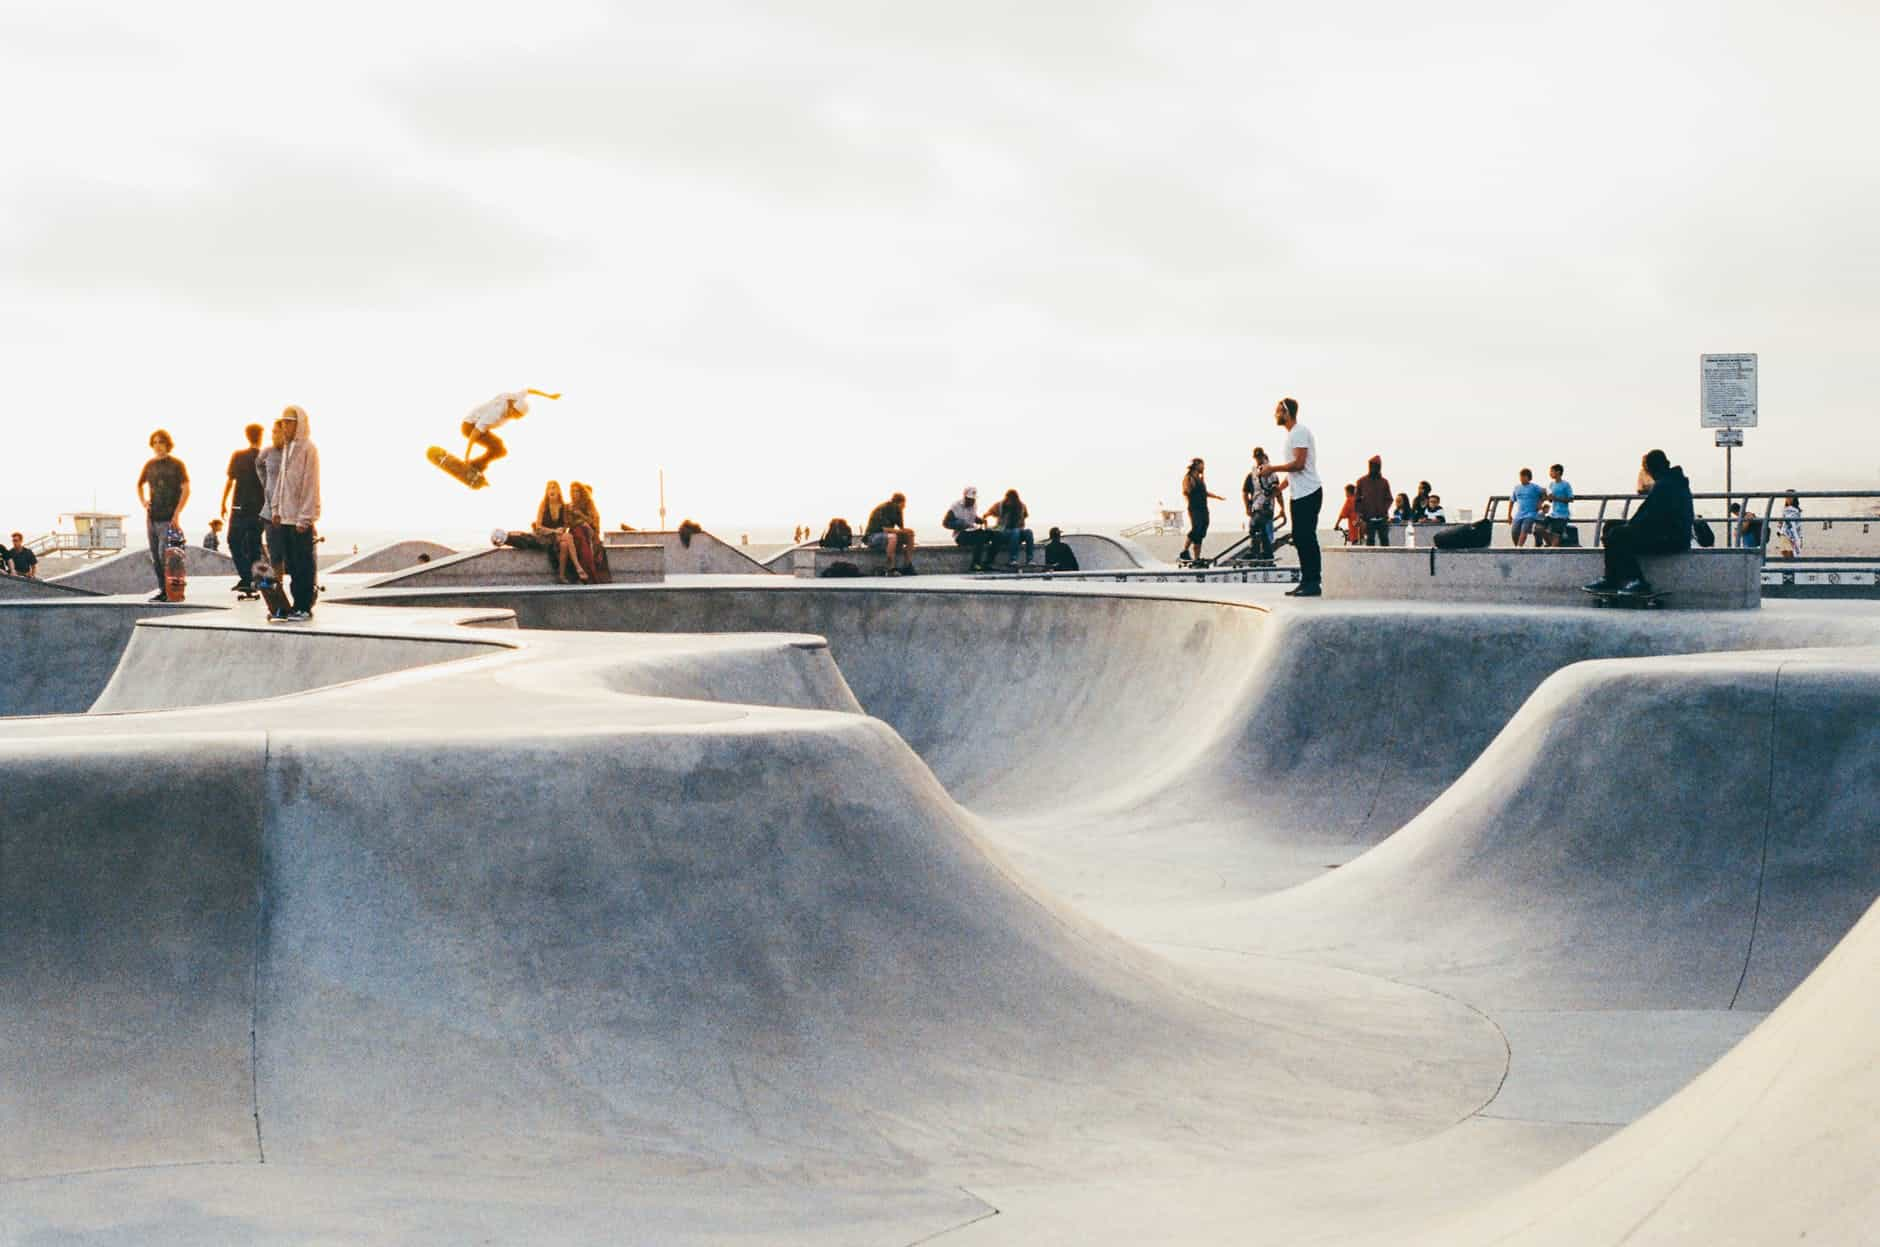 Skate Park: How To Go For It